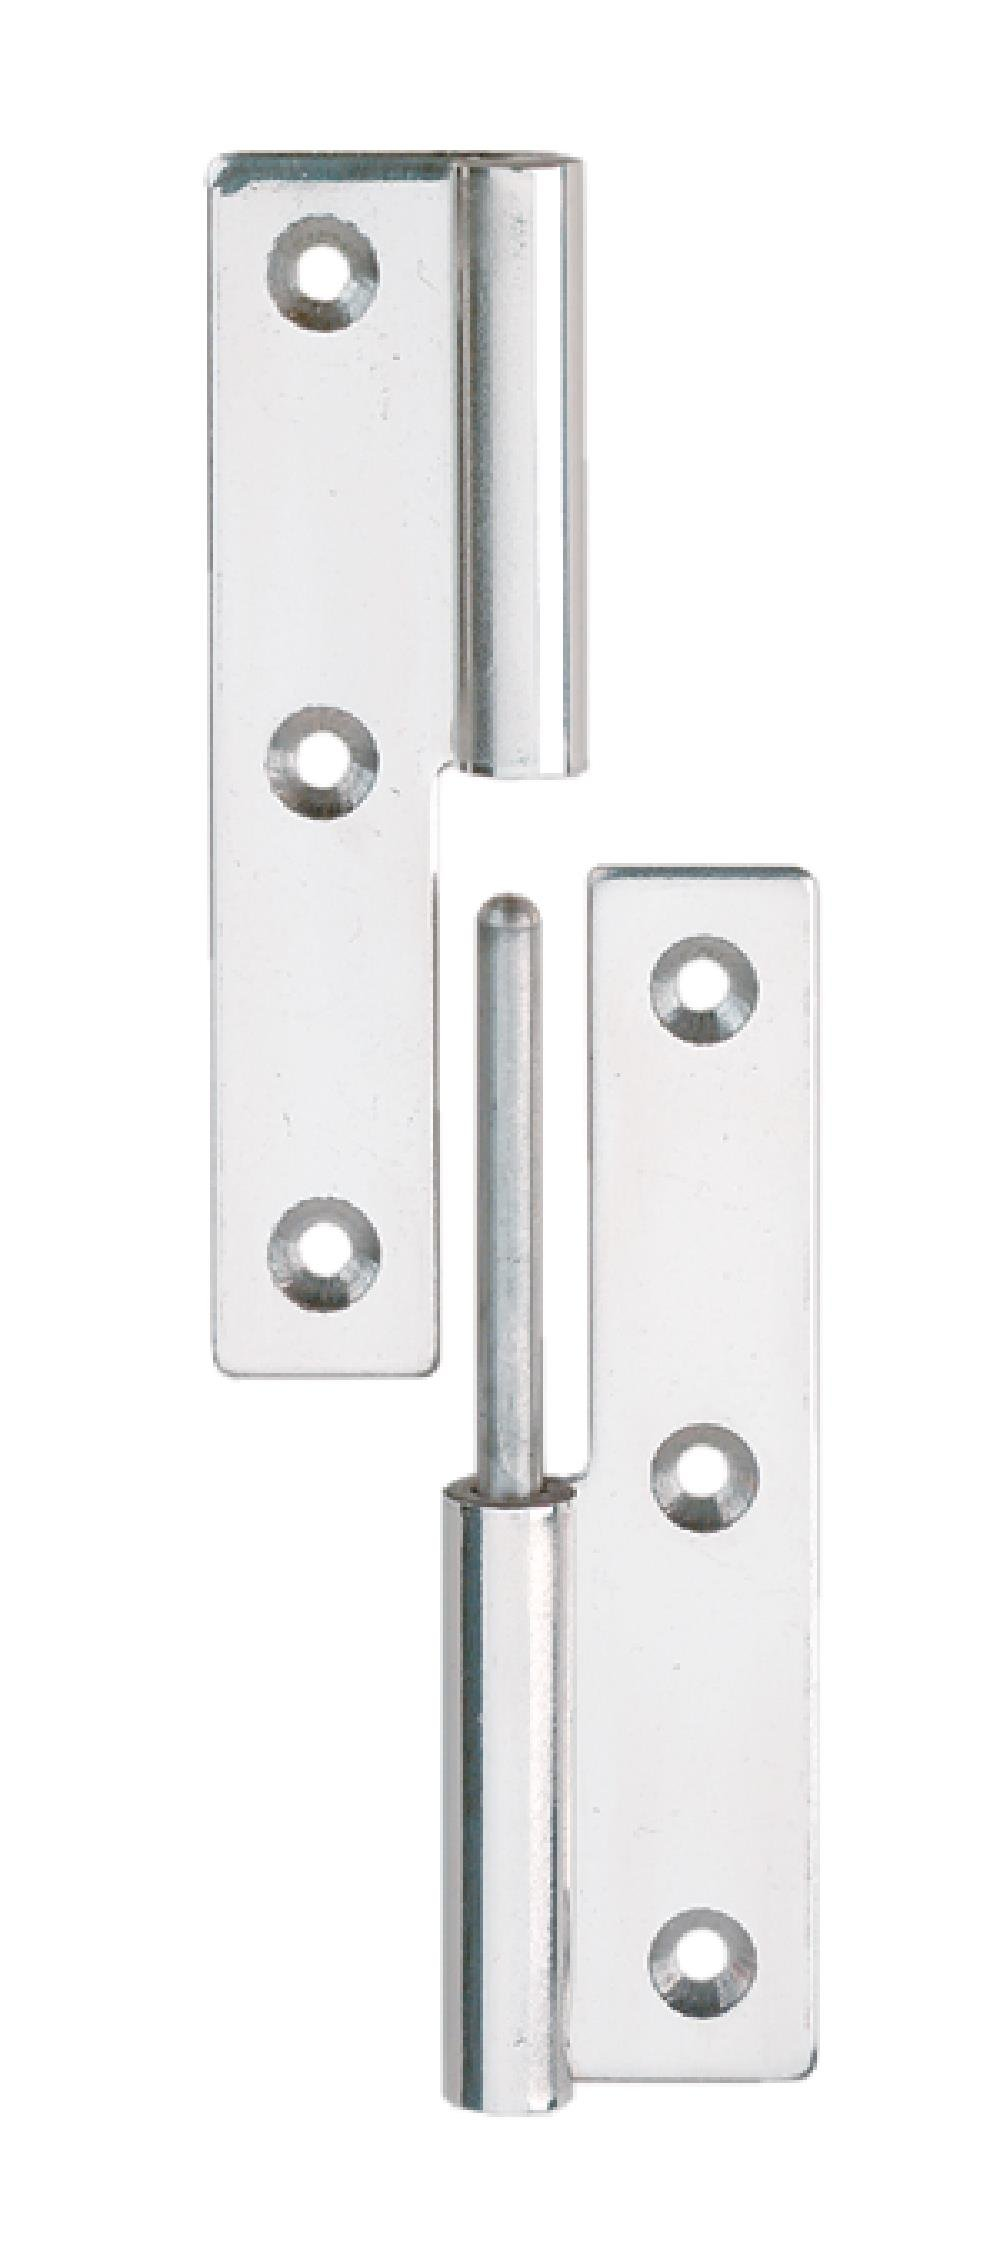 Sugatsune KN-75L/SS Lift Off Hinge, Stainless Steel 304, Polished Finish, Left Handedness, 2mm Leaf Thickness, 38mm Open Width, 8.5mm Pin Diameter for the Knuckle, 3.2mm Mounting Hole Diameter